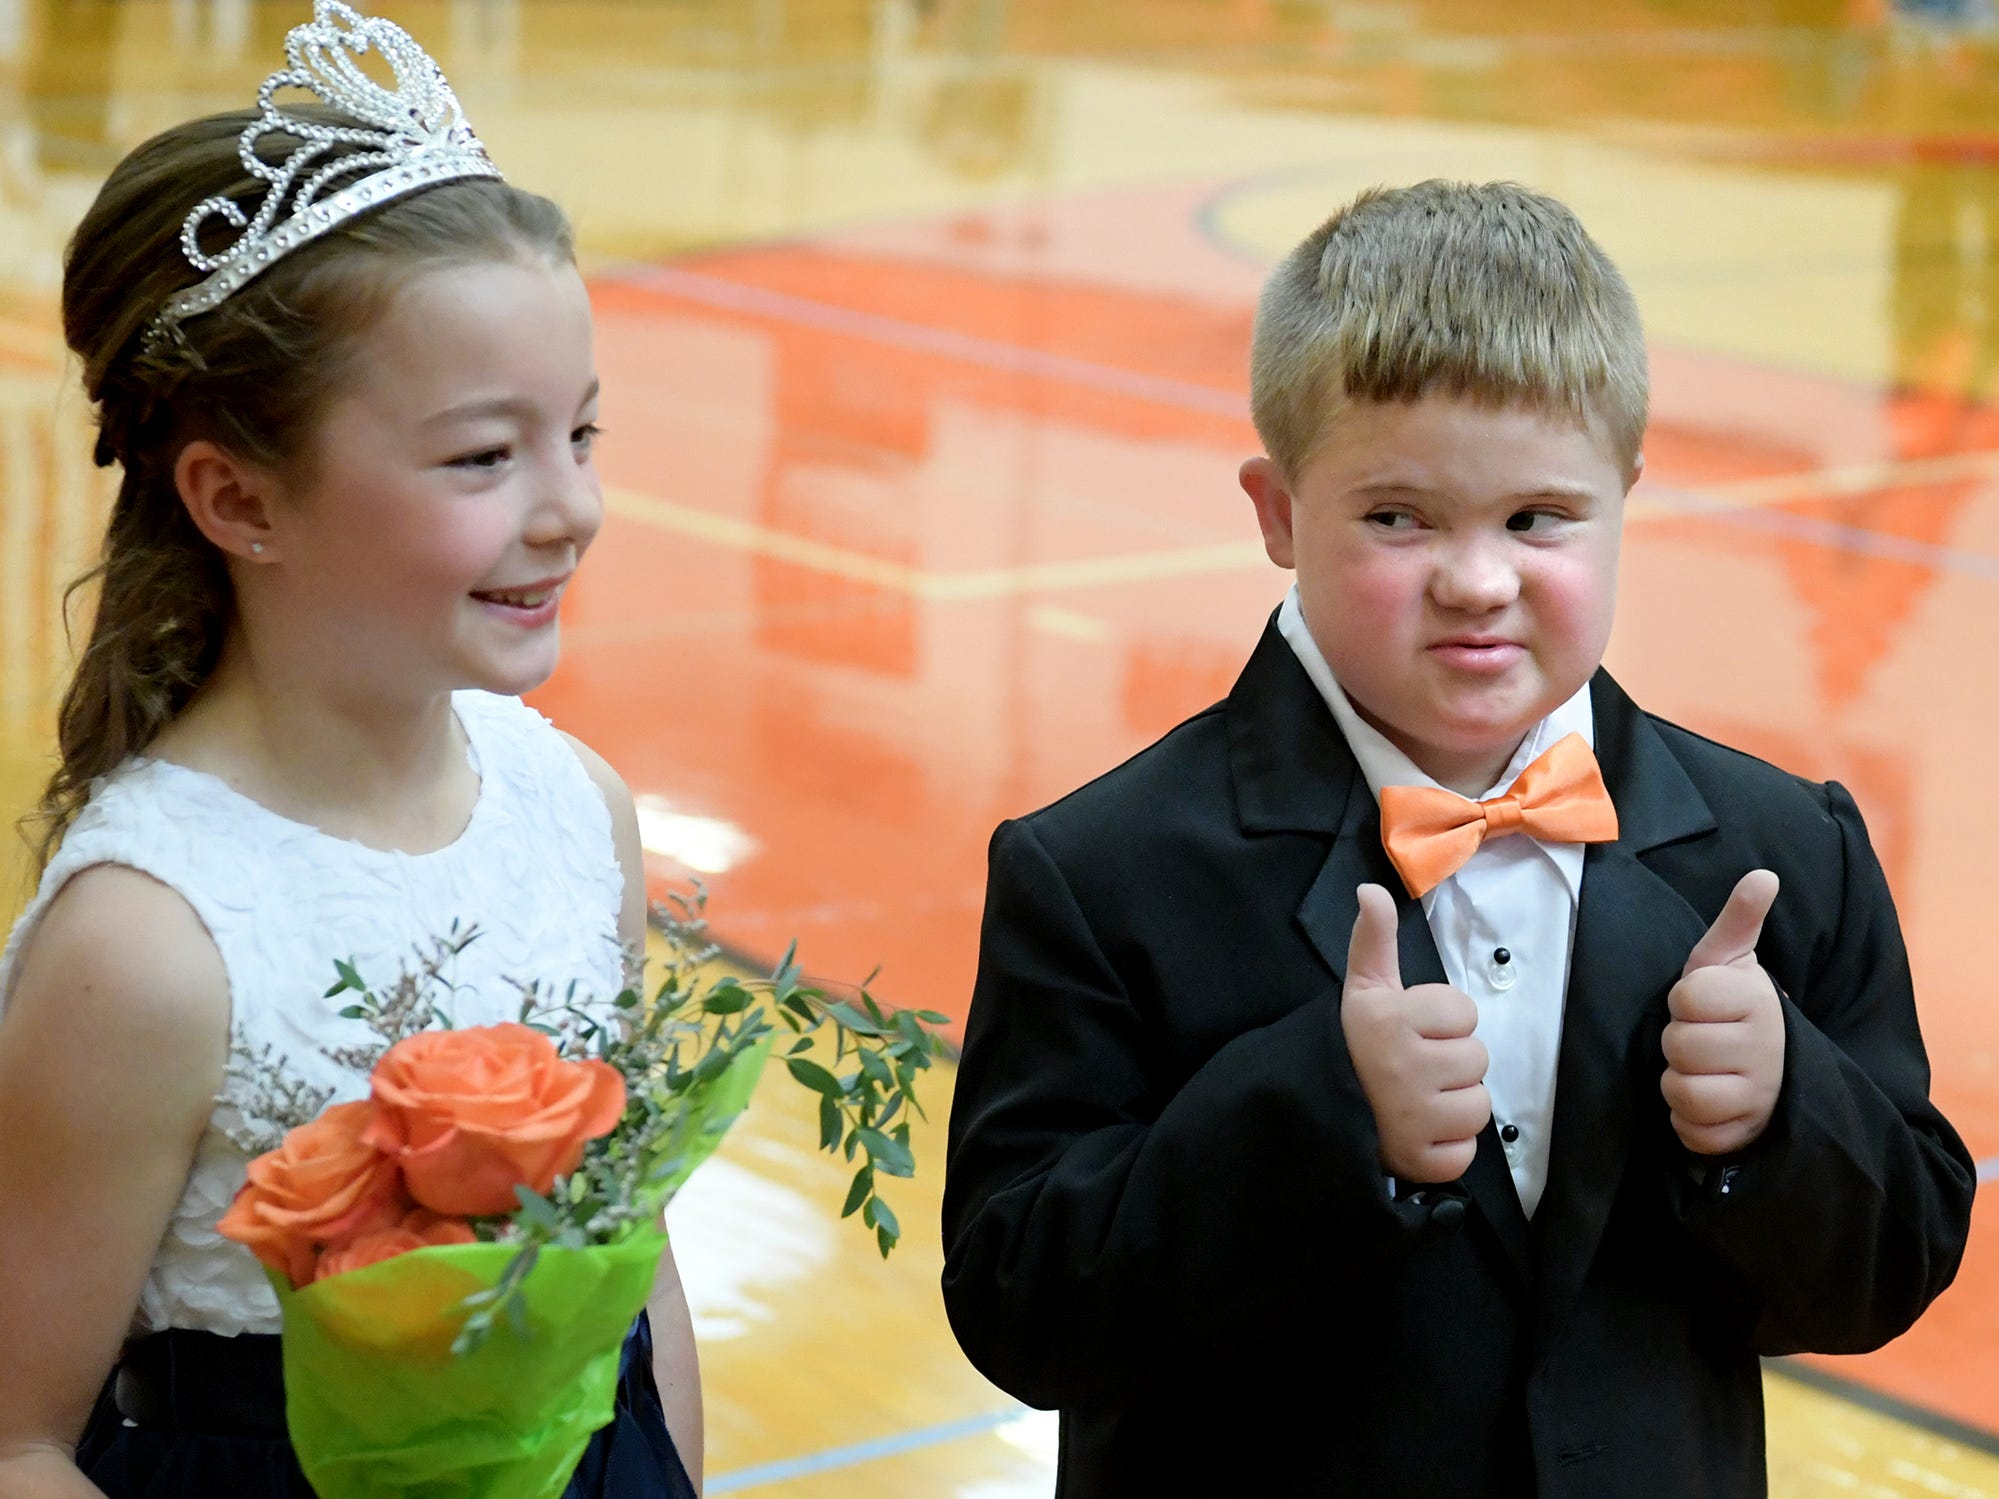 Homecoming prince Braydon Flynn, of Spring Garden Township, and princess, Keira Steinmetz, an Indian Rock Elementary third grader, both 8, prepare to be introduced at the York Suburban High School Homecoming pep rally Friday, Sept. 28, 2018. Braydon, who has Down Syndrome, is a Valley View Elementary second grader who participates in class with the help of a personal care assistant. The high school student council chooses the young court of princes and princesses from the district to appear in support of the high school's homecoming court. Bill Kalina photo